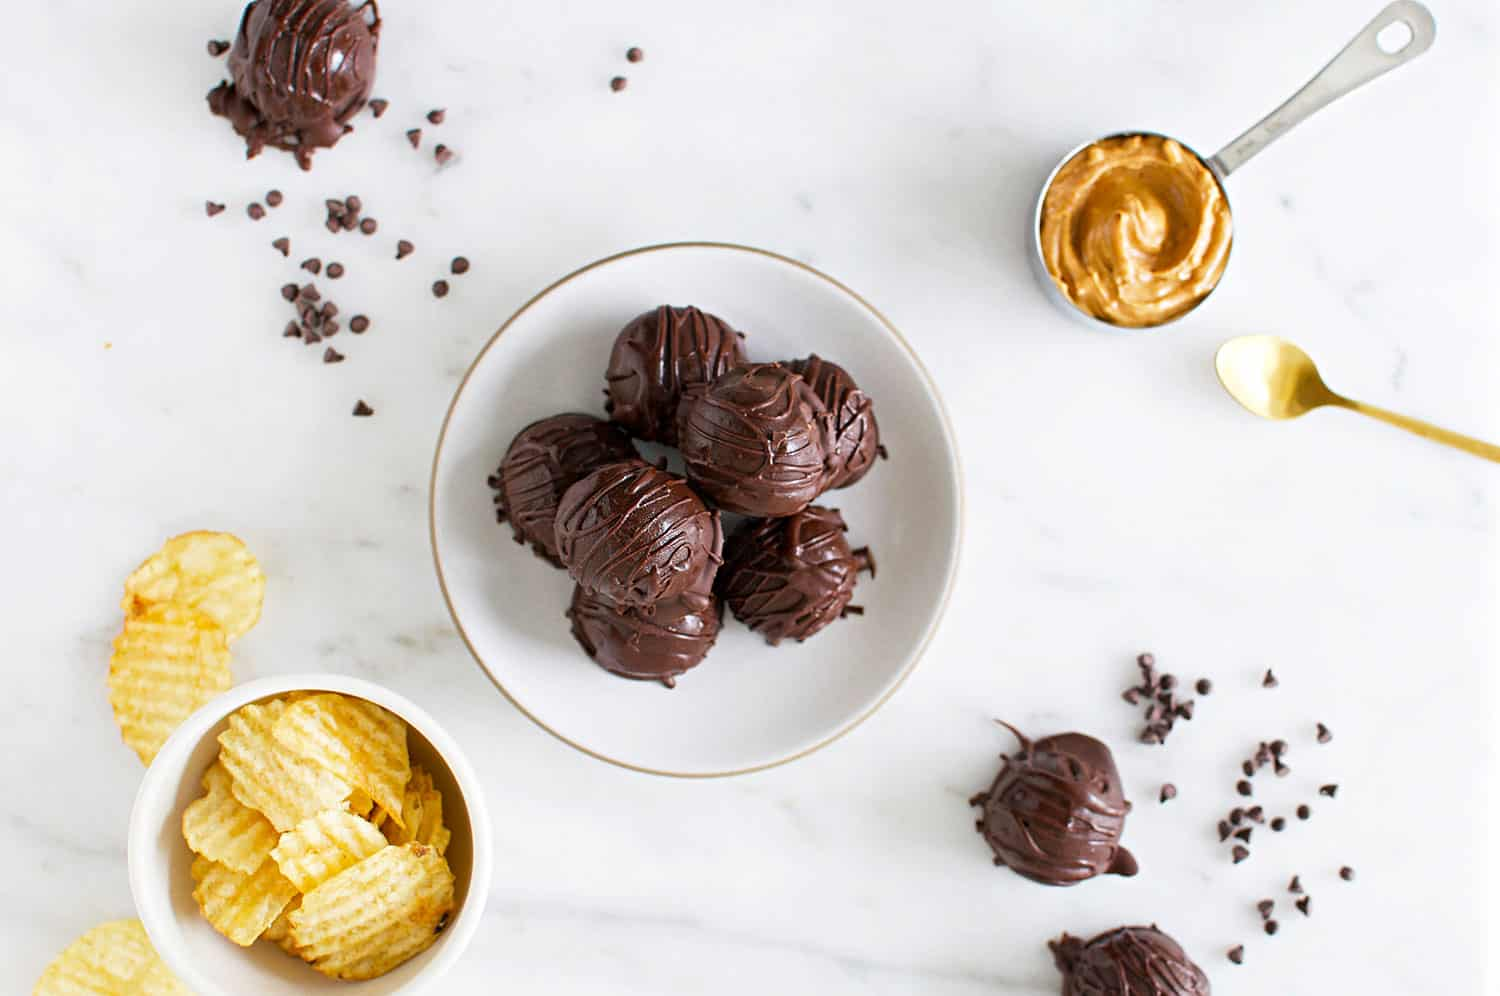 No-Bake Gluten-Free Chocolate Peanut Butter Balls recipe + How To Build a Simple Snack Board (via thepigandquill.com) #holidaysnacks #christmascookies #dessert